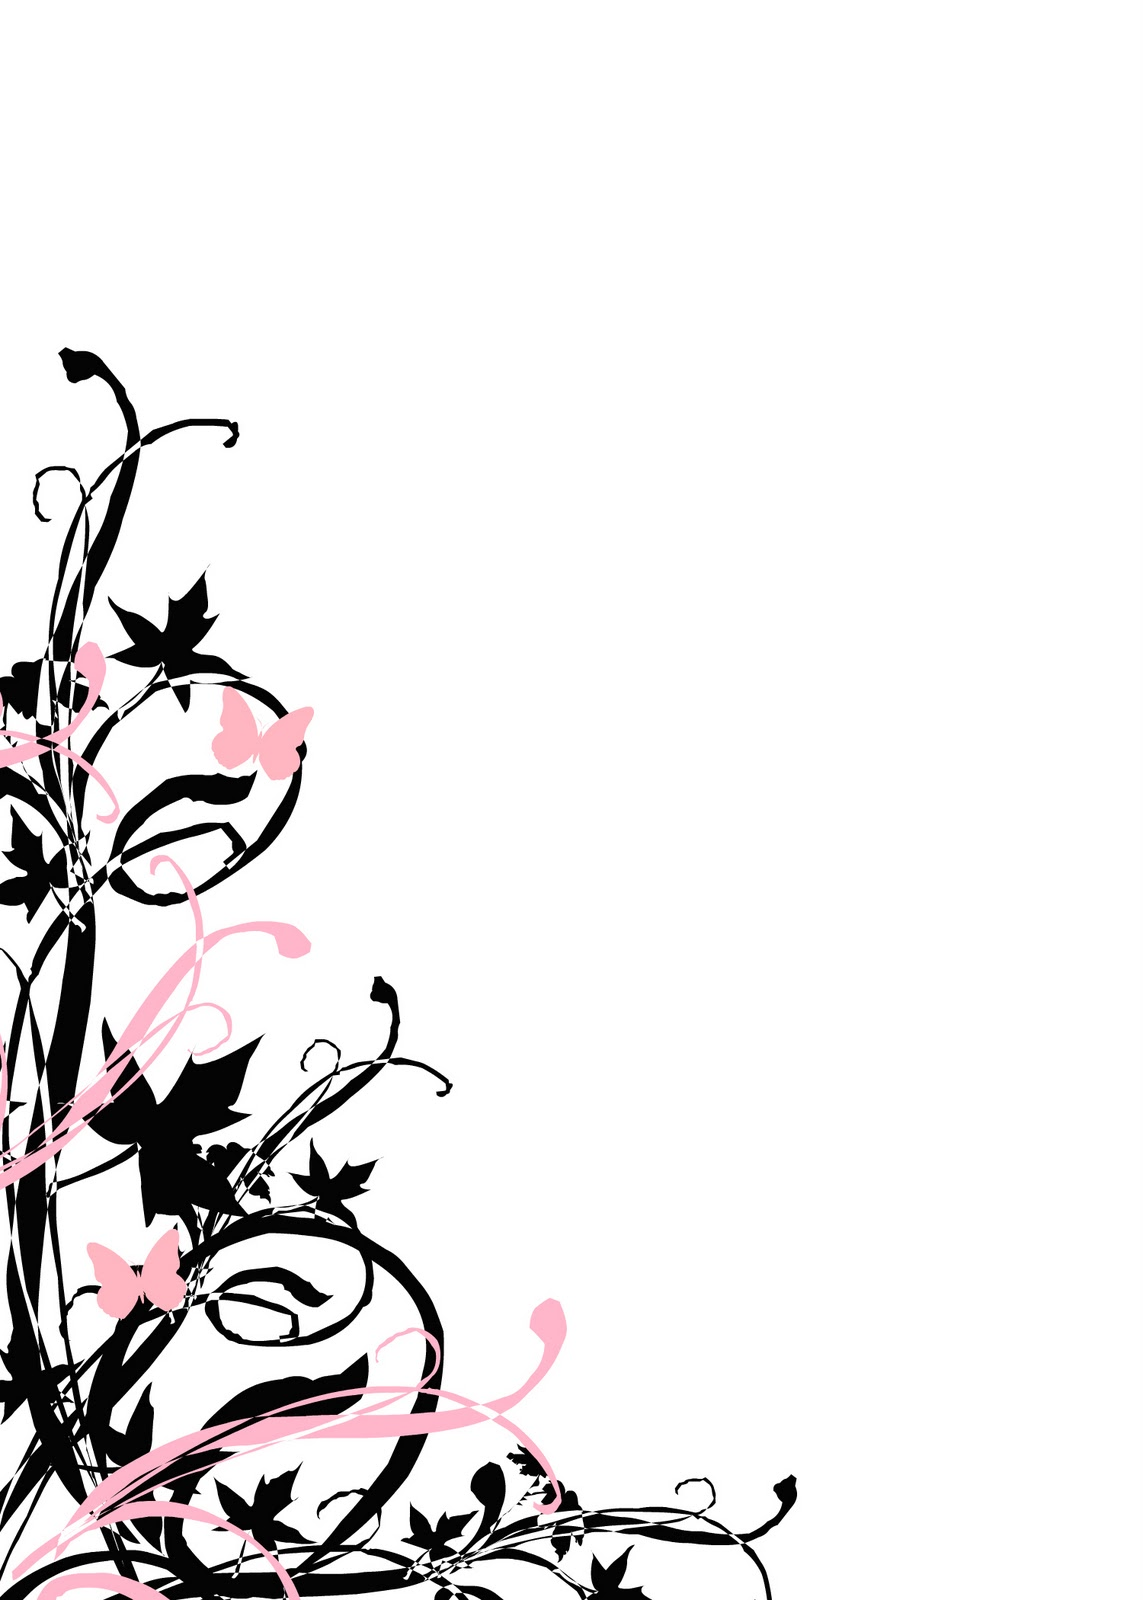 Free Wedding Background Clipart, Download Free Clip Art.